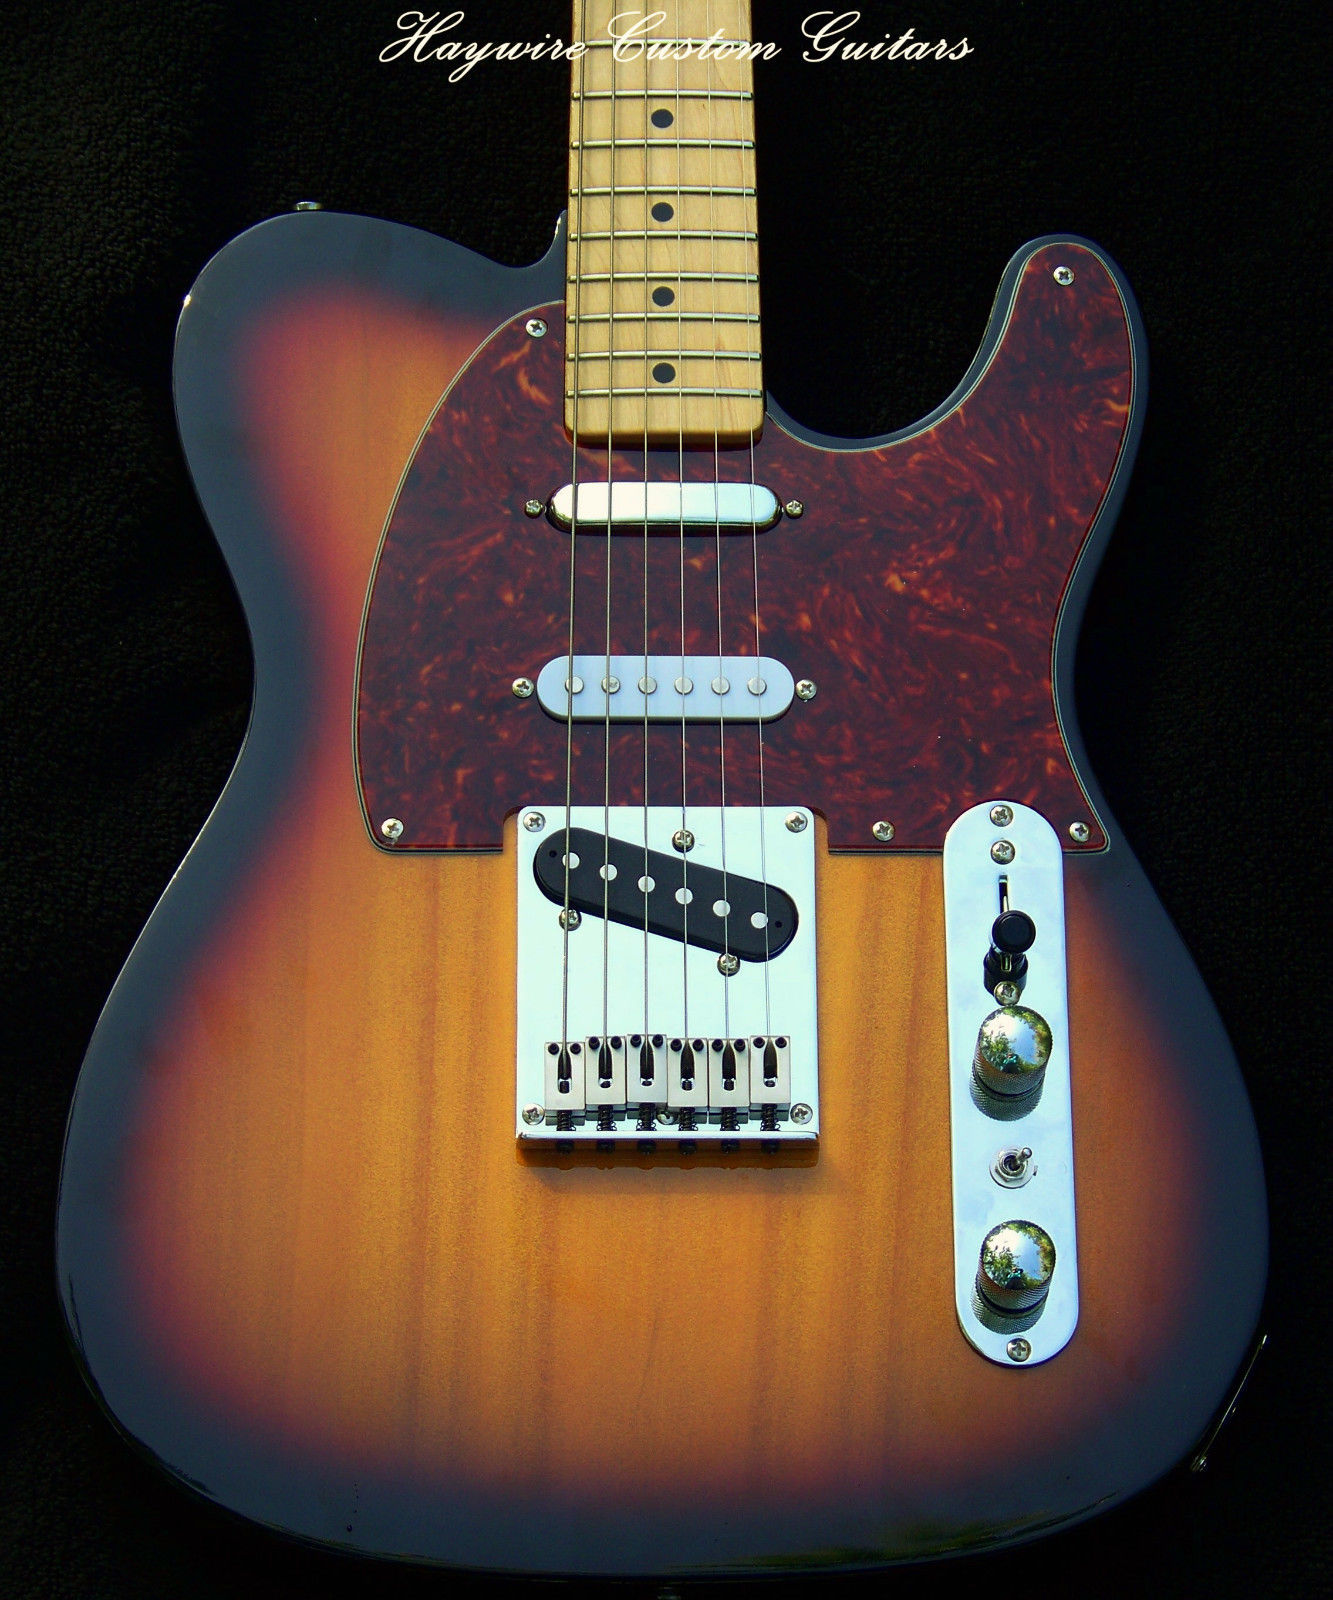 Nashville Haywire Shredneck Special Pickups And 7 Sound Switching Way Switch Strat This Haywireshredneck Has A Set Of Lollar Tele Vintage Blonde In The Middle 5 Normally